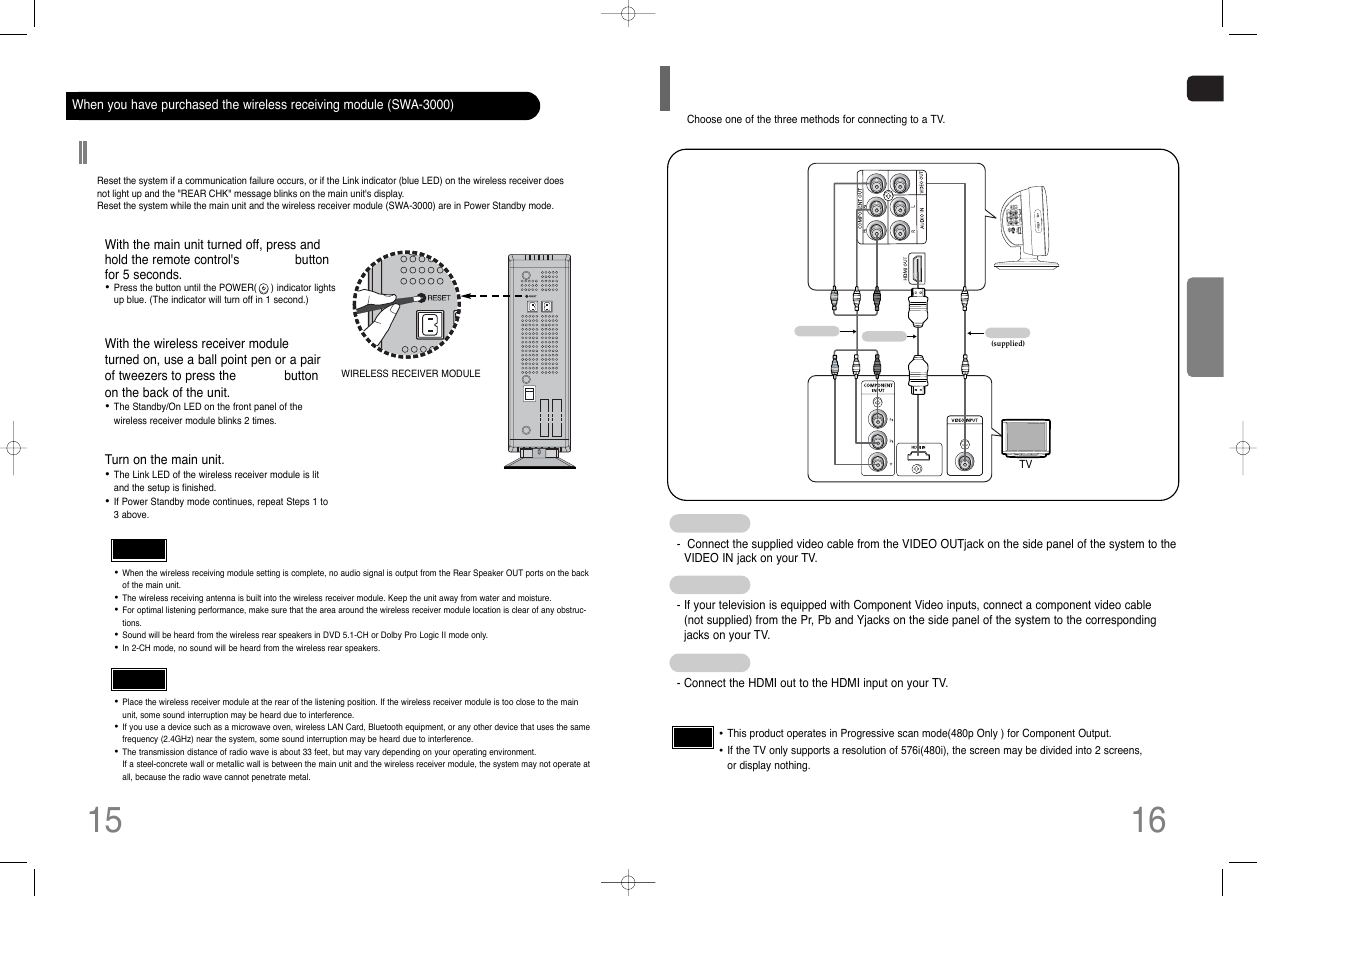 Connecting the video out to tv, Resetting wireless